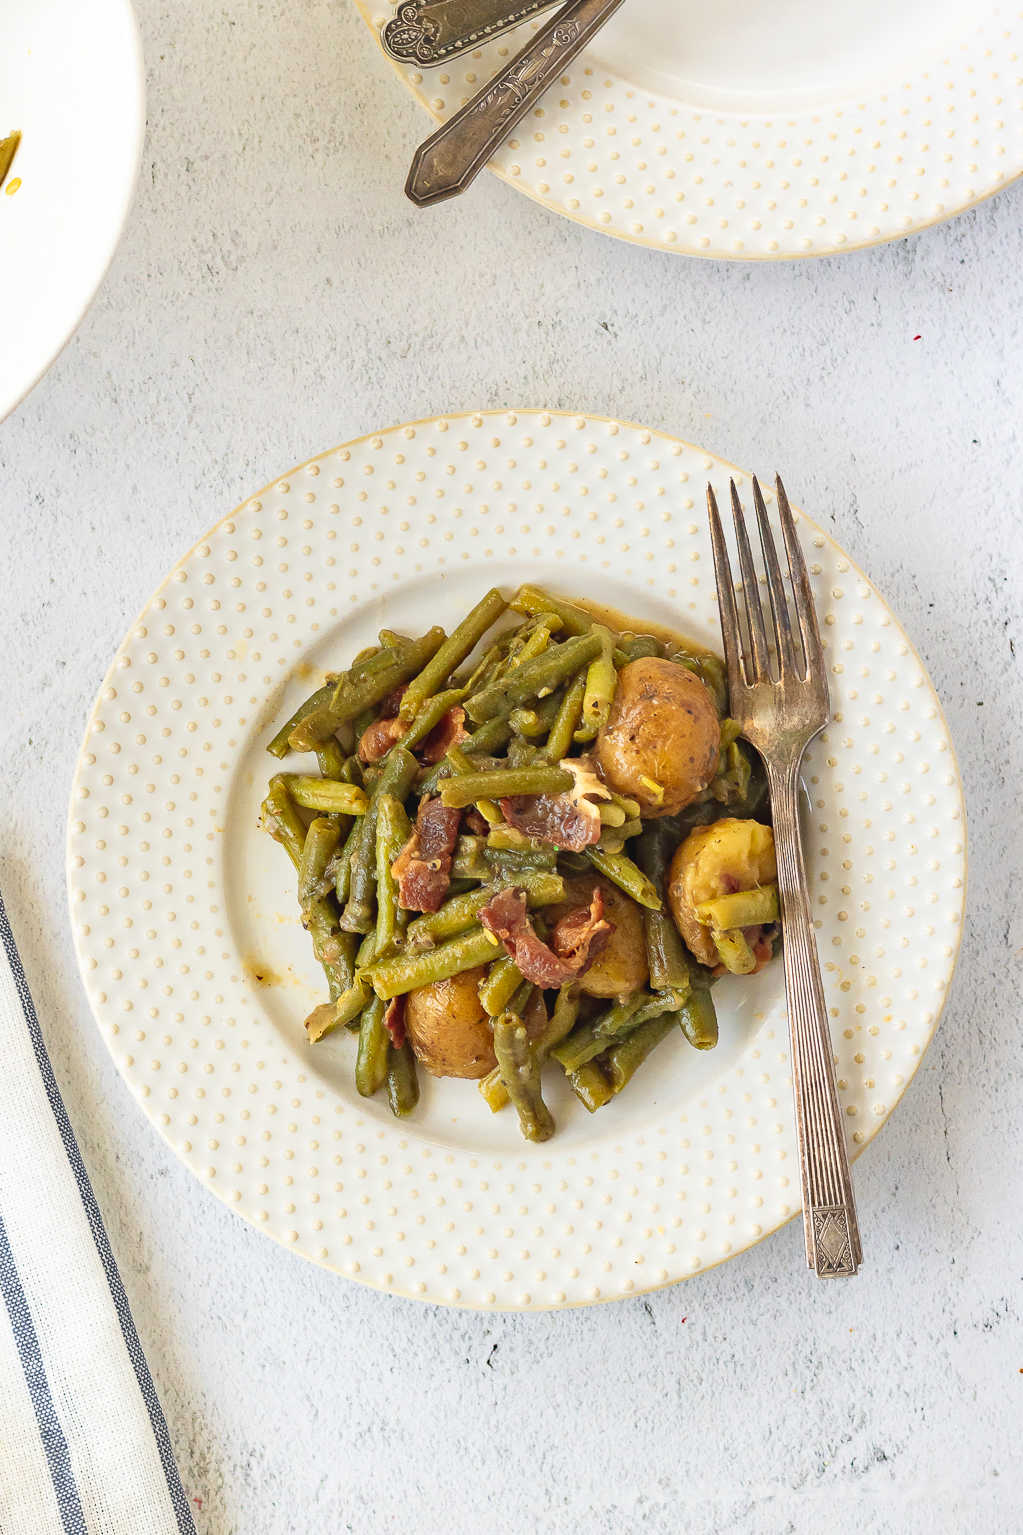 An overhead view of a serving of green beans and potatoes on a white plate.